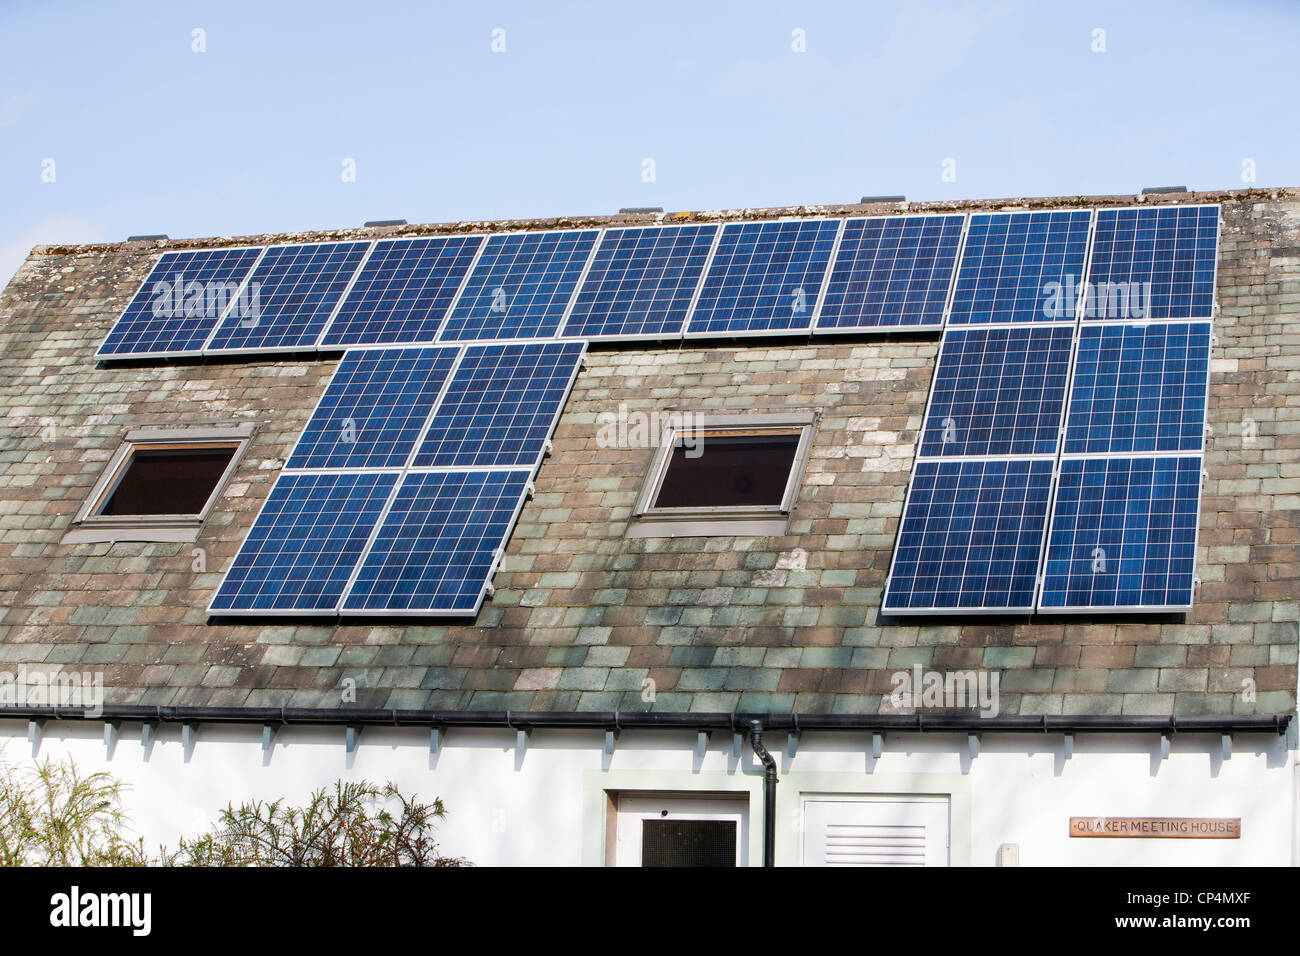 Solar panels on the roof of the Keswick Quaker meeting house, Cumbria, UK. - Stock Image